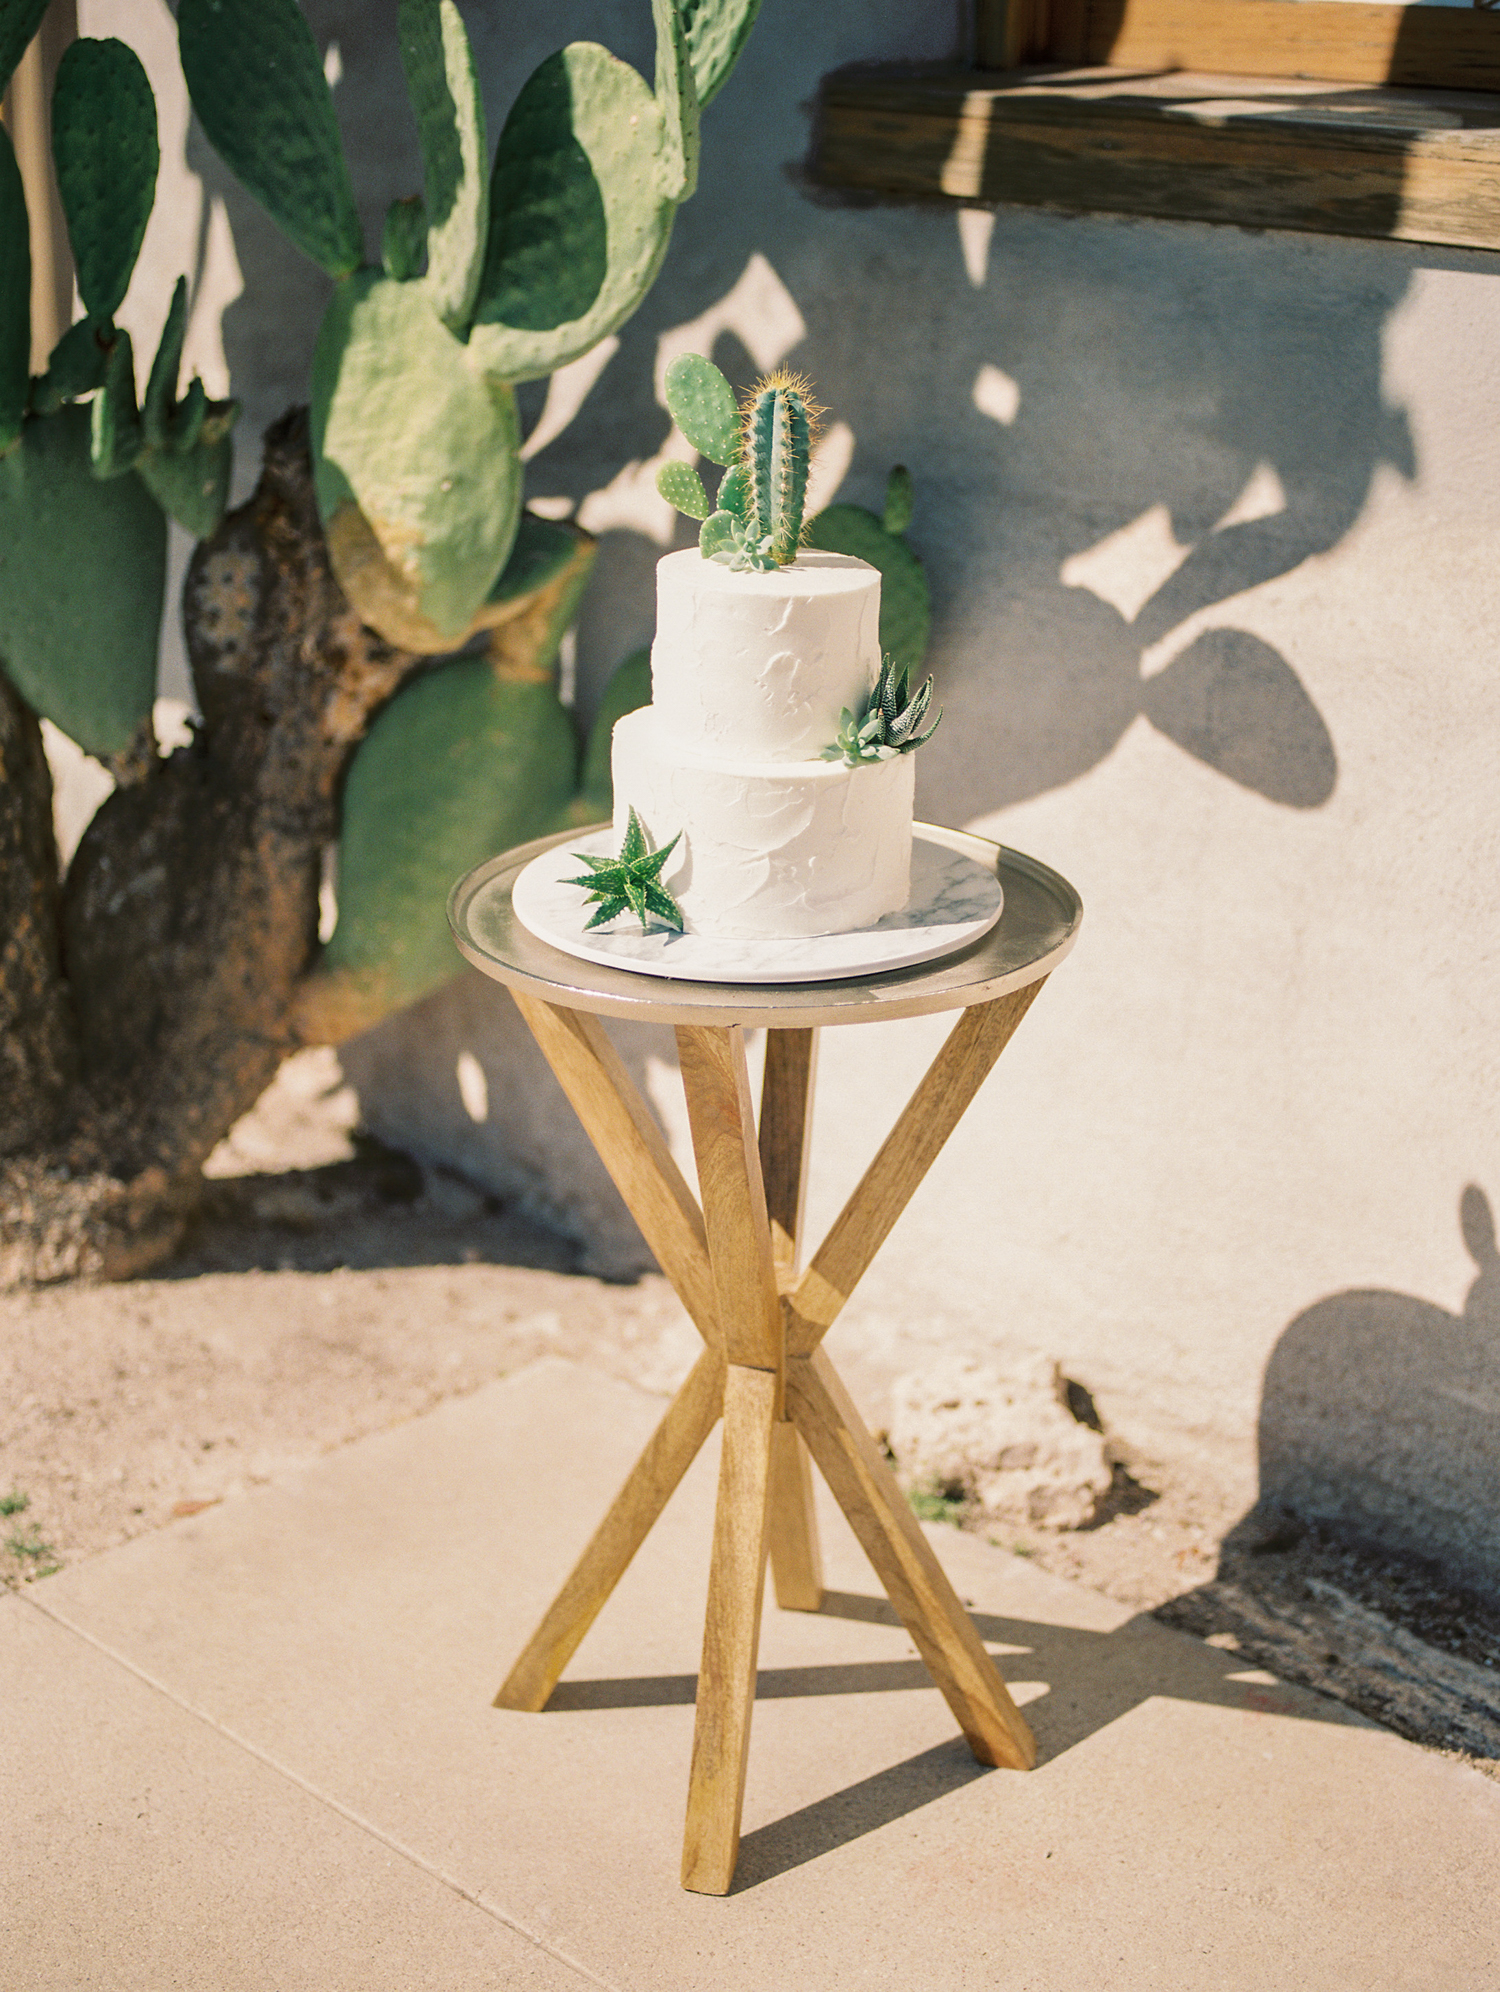 Beautiful white wedding cake by Crumbs cake Boutique with a real cactus and succulent cake topper!